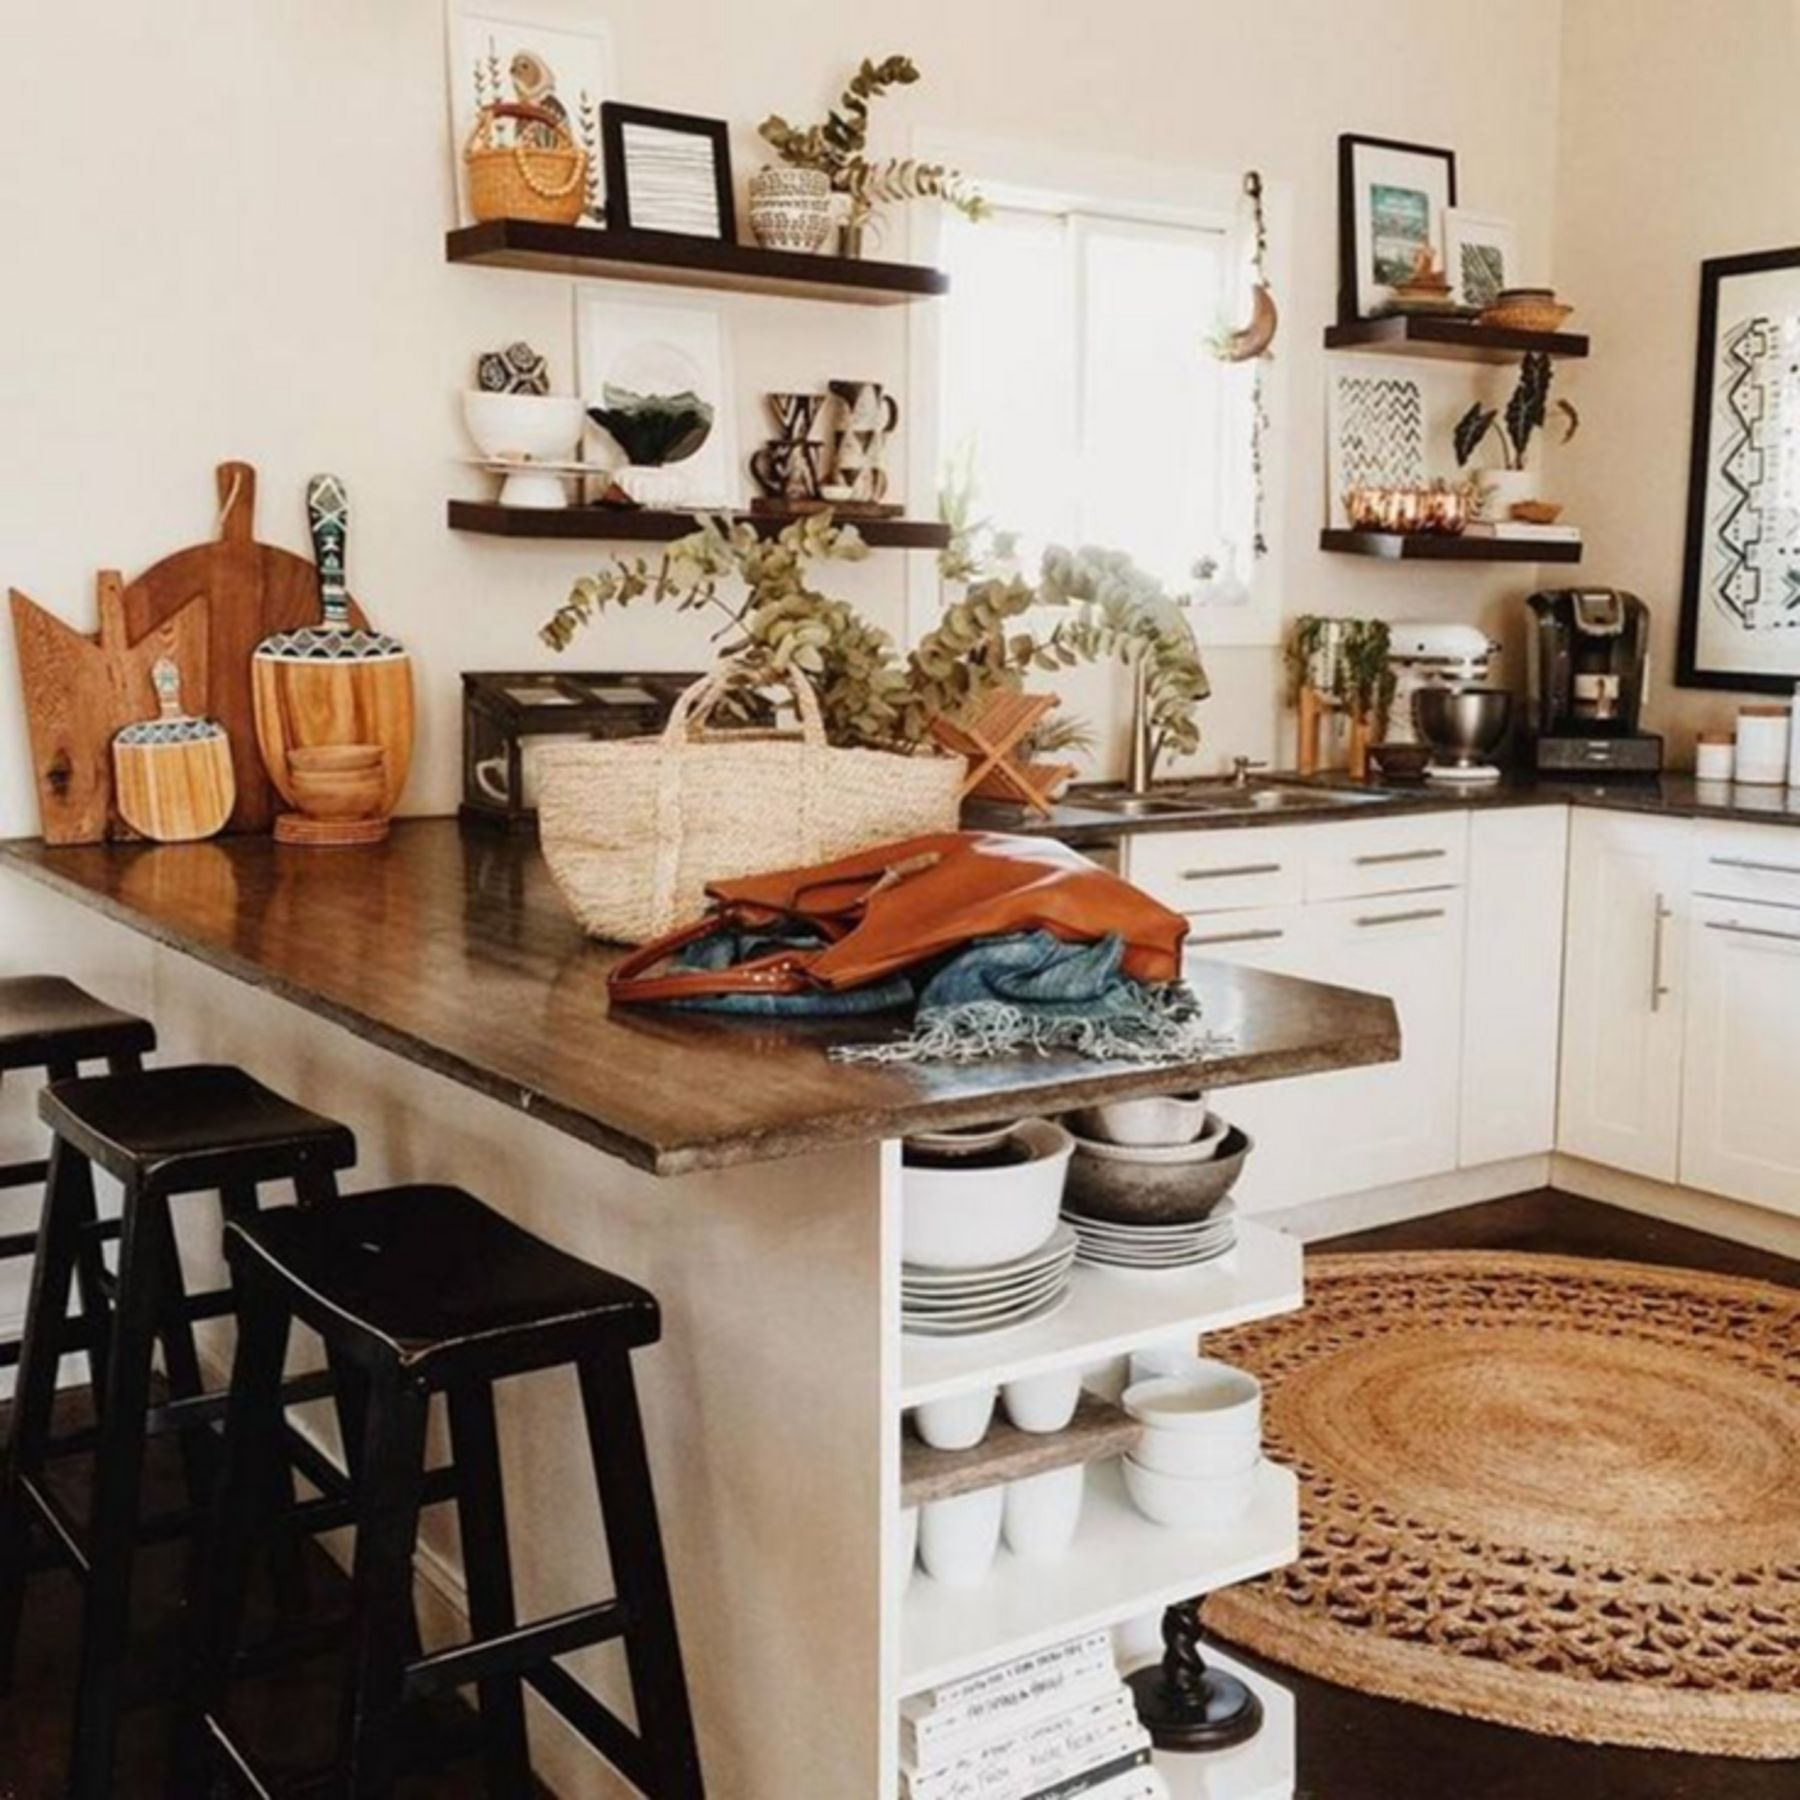 25 cozy bohemian kitchen design ideas for your kitchen bohemian style kitchen bohemian on boho chic interior design kitchen id=19676